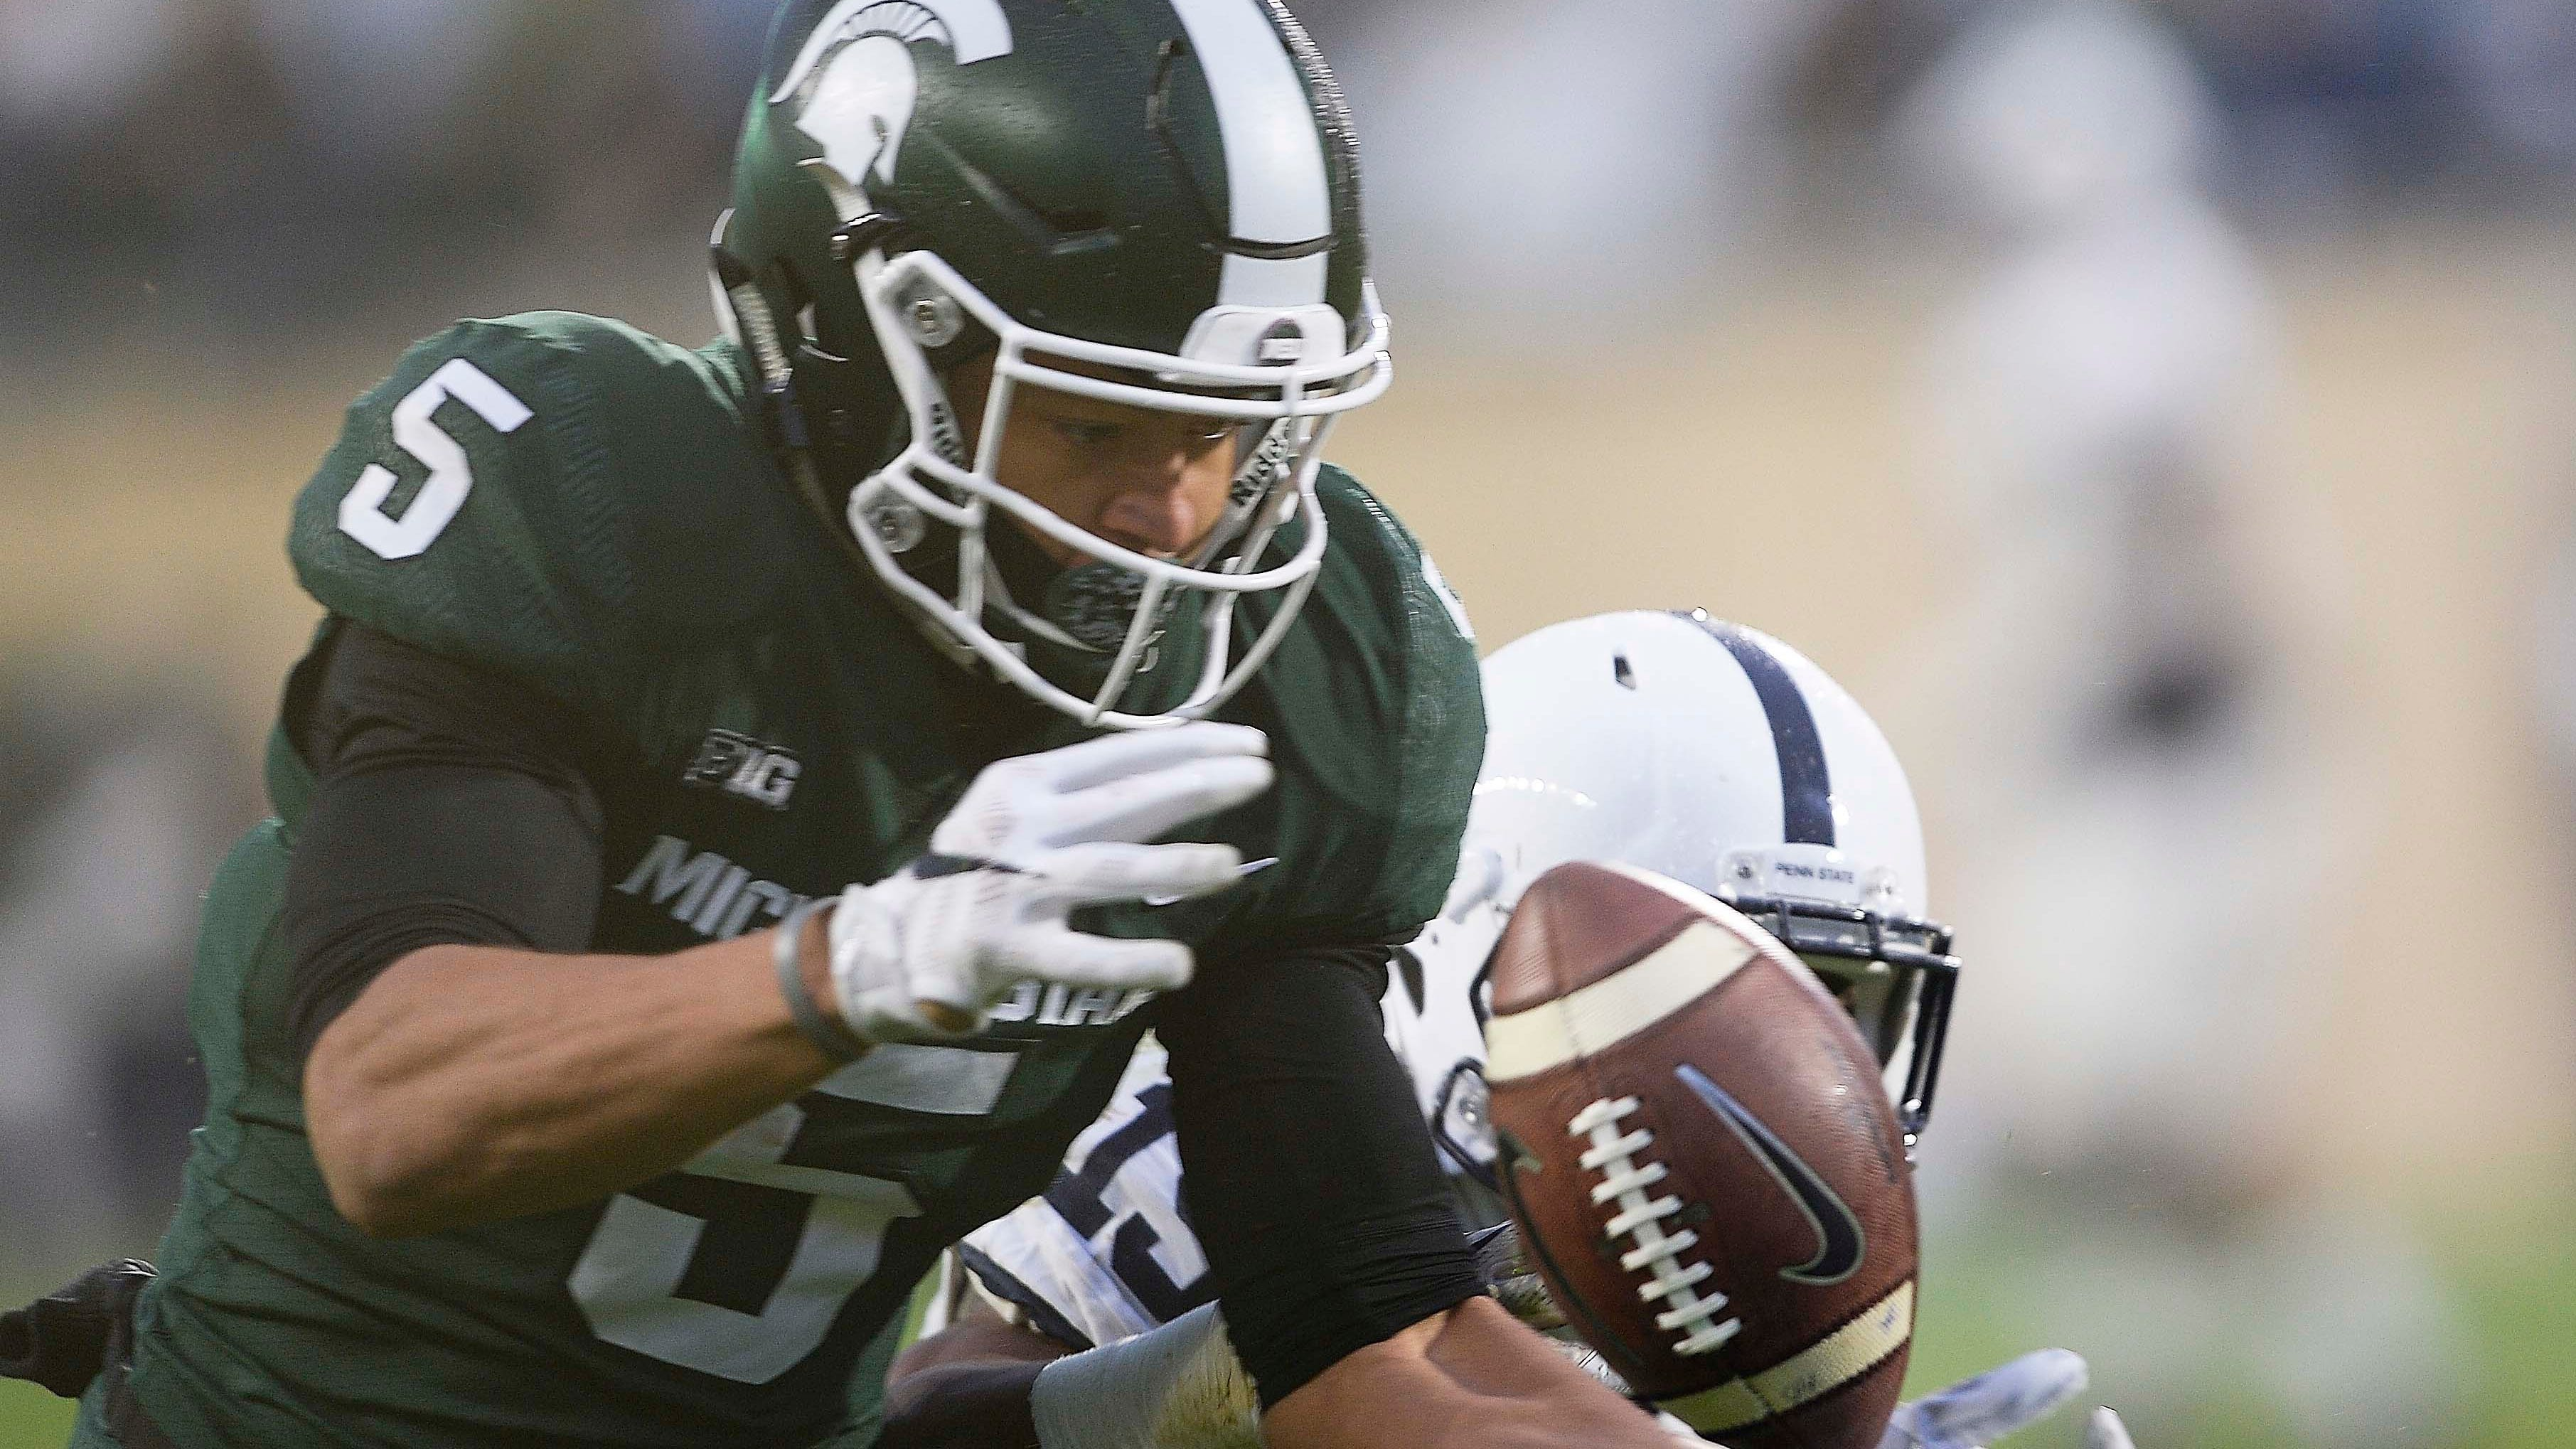 Hunter Rison, former Michigan State receiver, suspended indefinitely at Kansas State